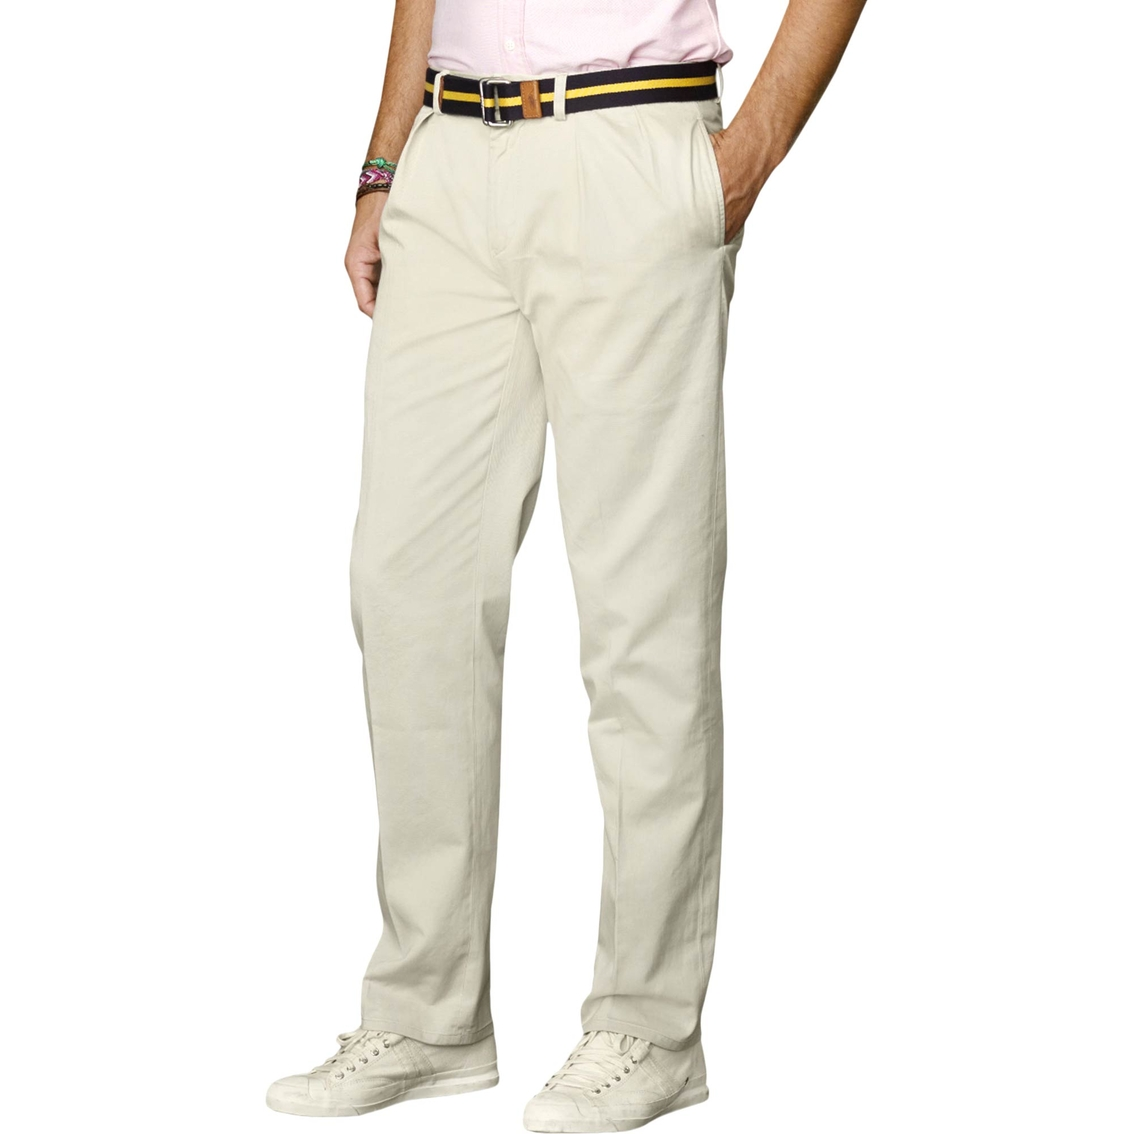 a3b0fa471d77d Polo Ralph Lauren Big   Tall Classic Fit Pleated Chino Pants